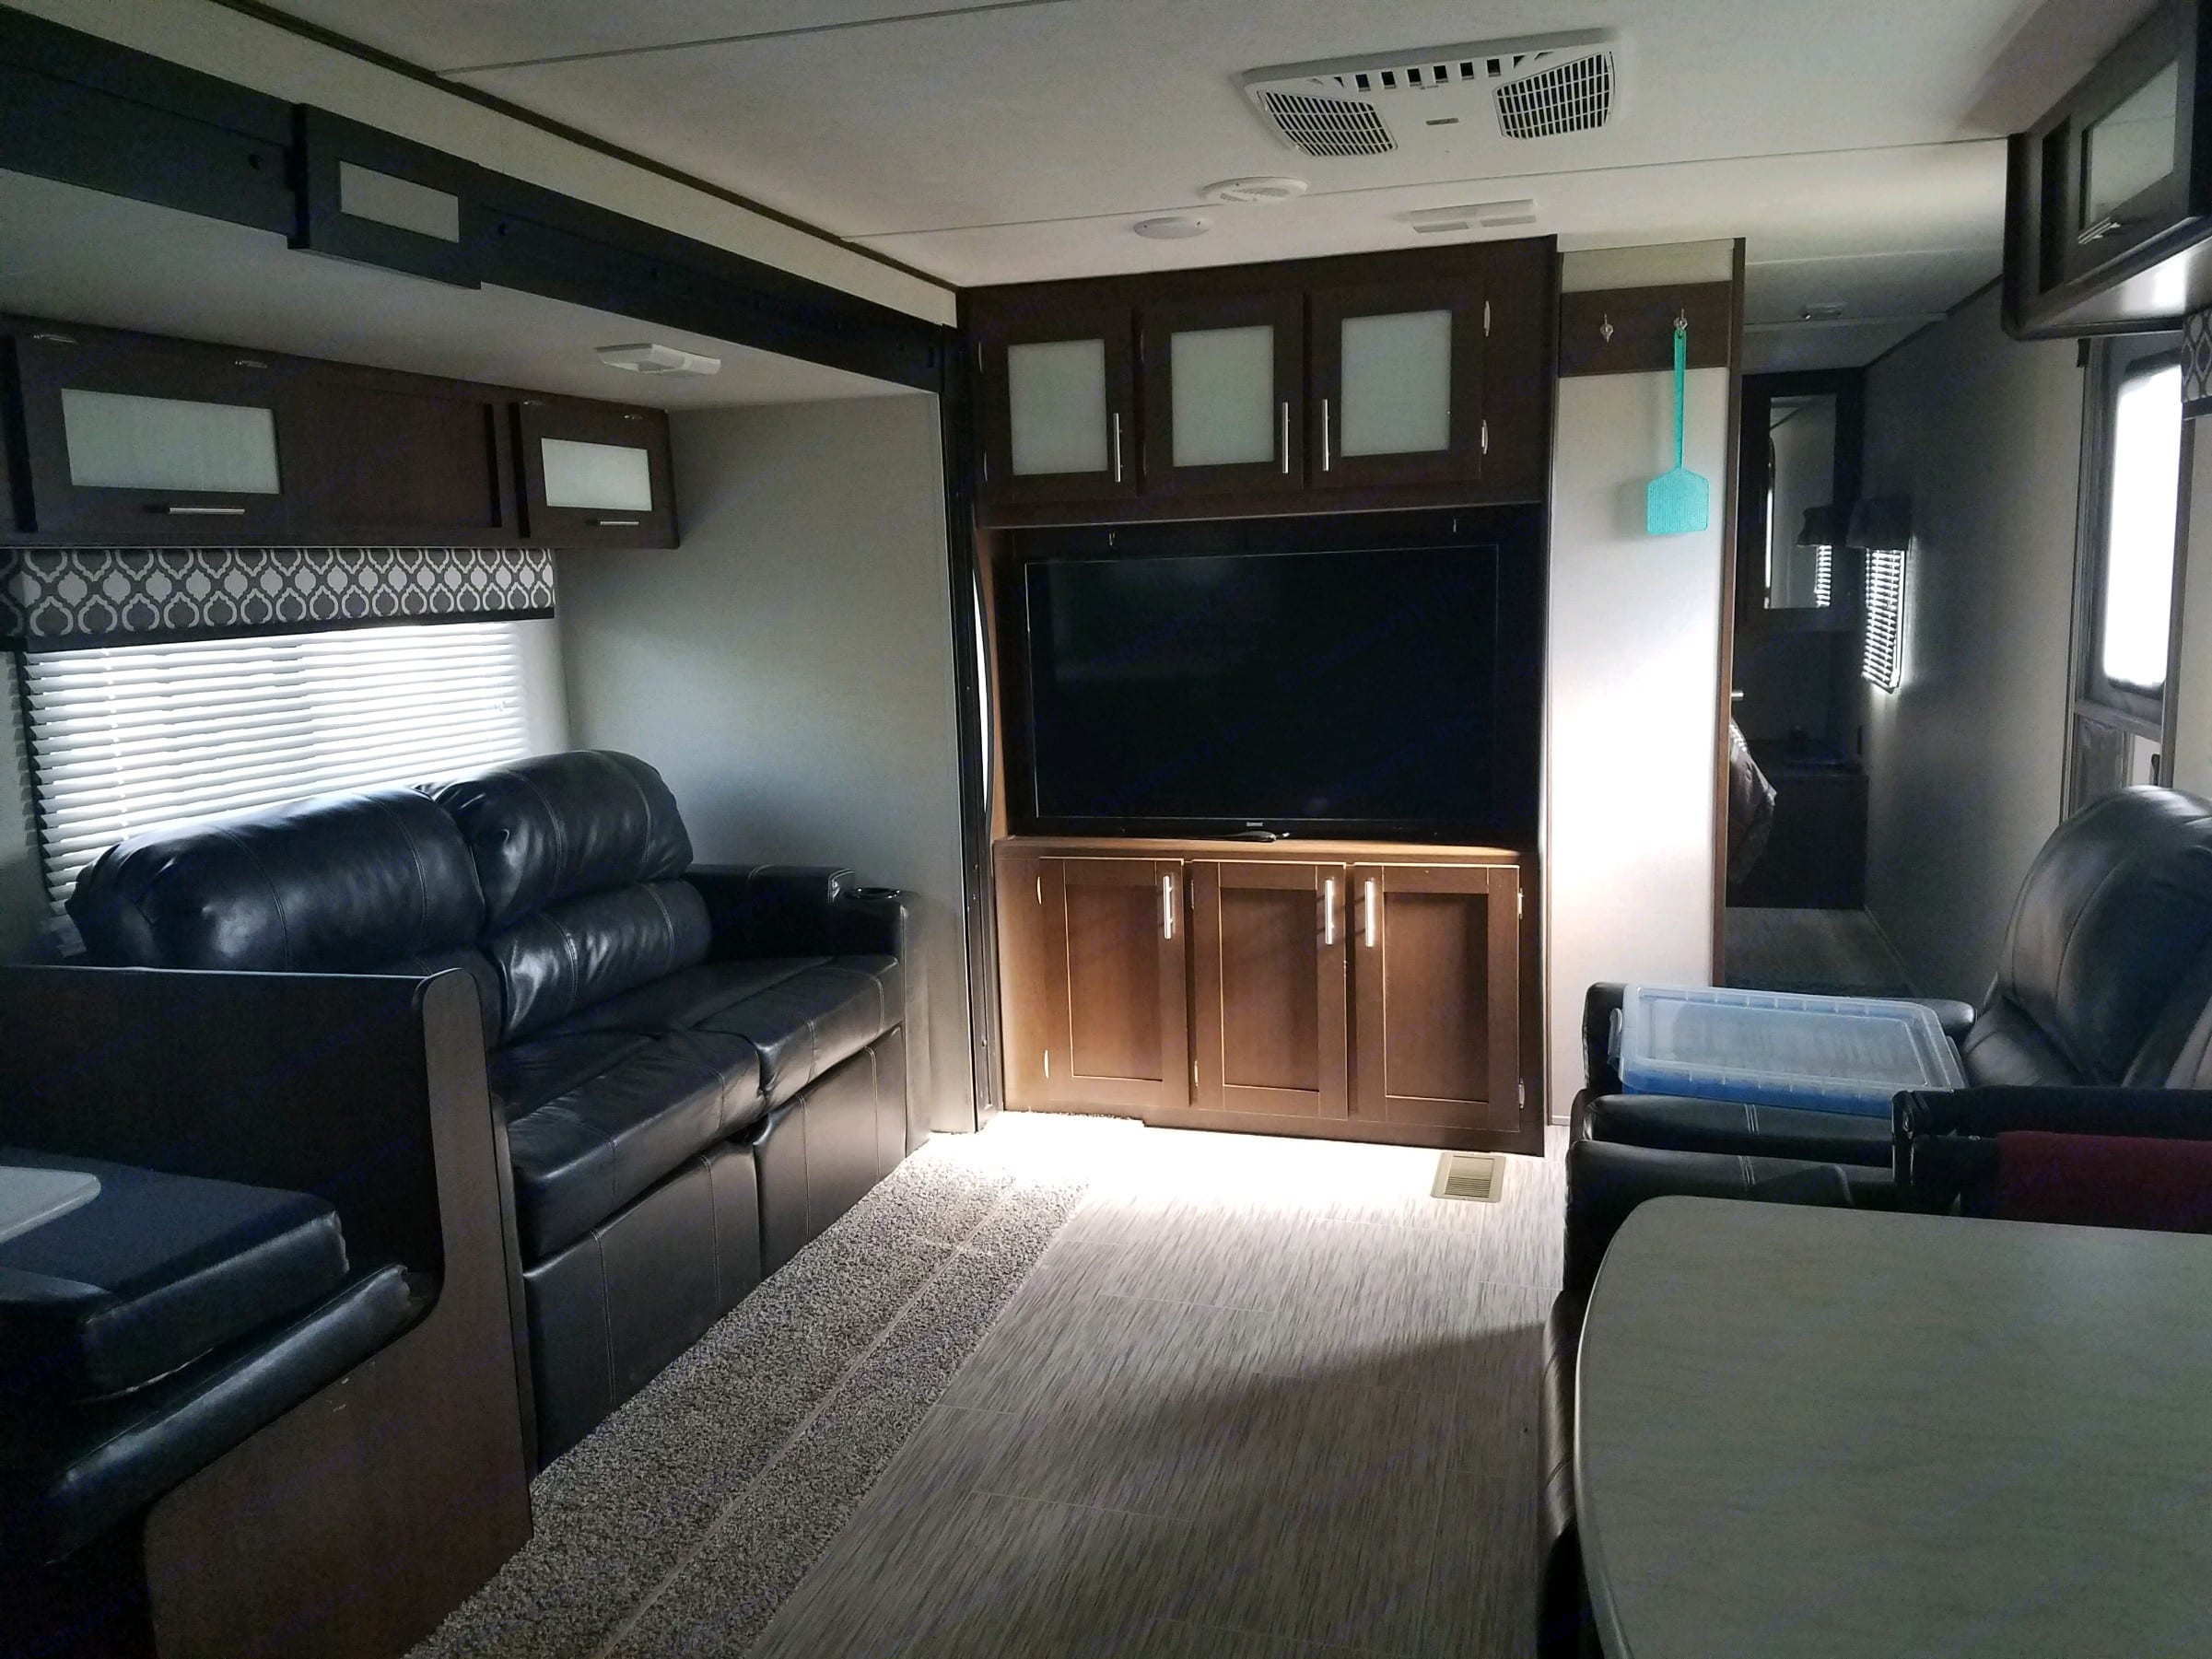 different angles of living space. TR COACH AVENGER 2019